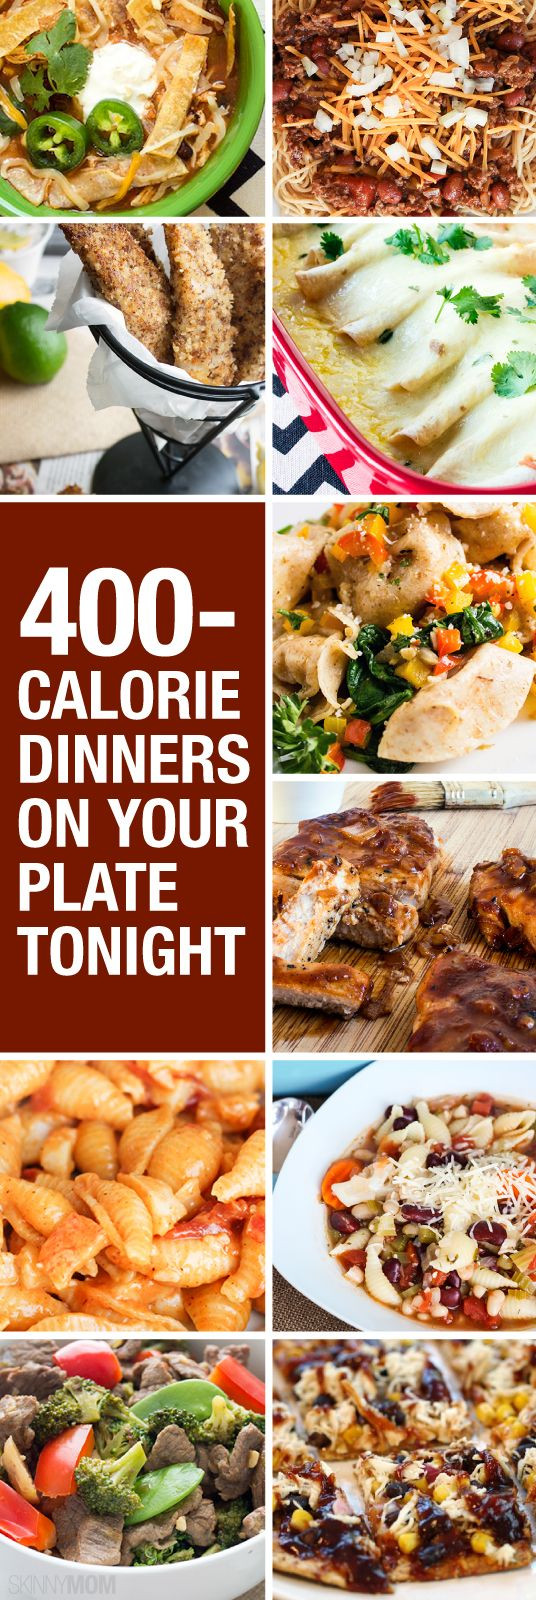 Low Calorie Dinners For Two  Dinner Cincinnati chili and Sour cream enchiladas on